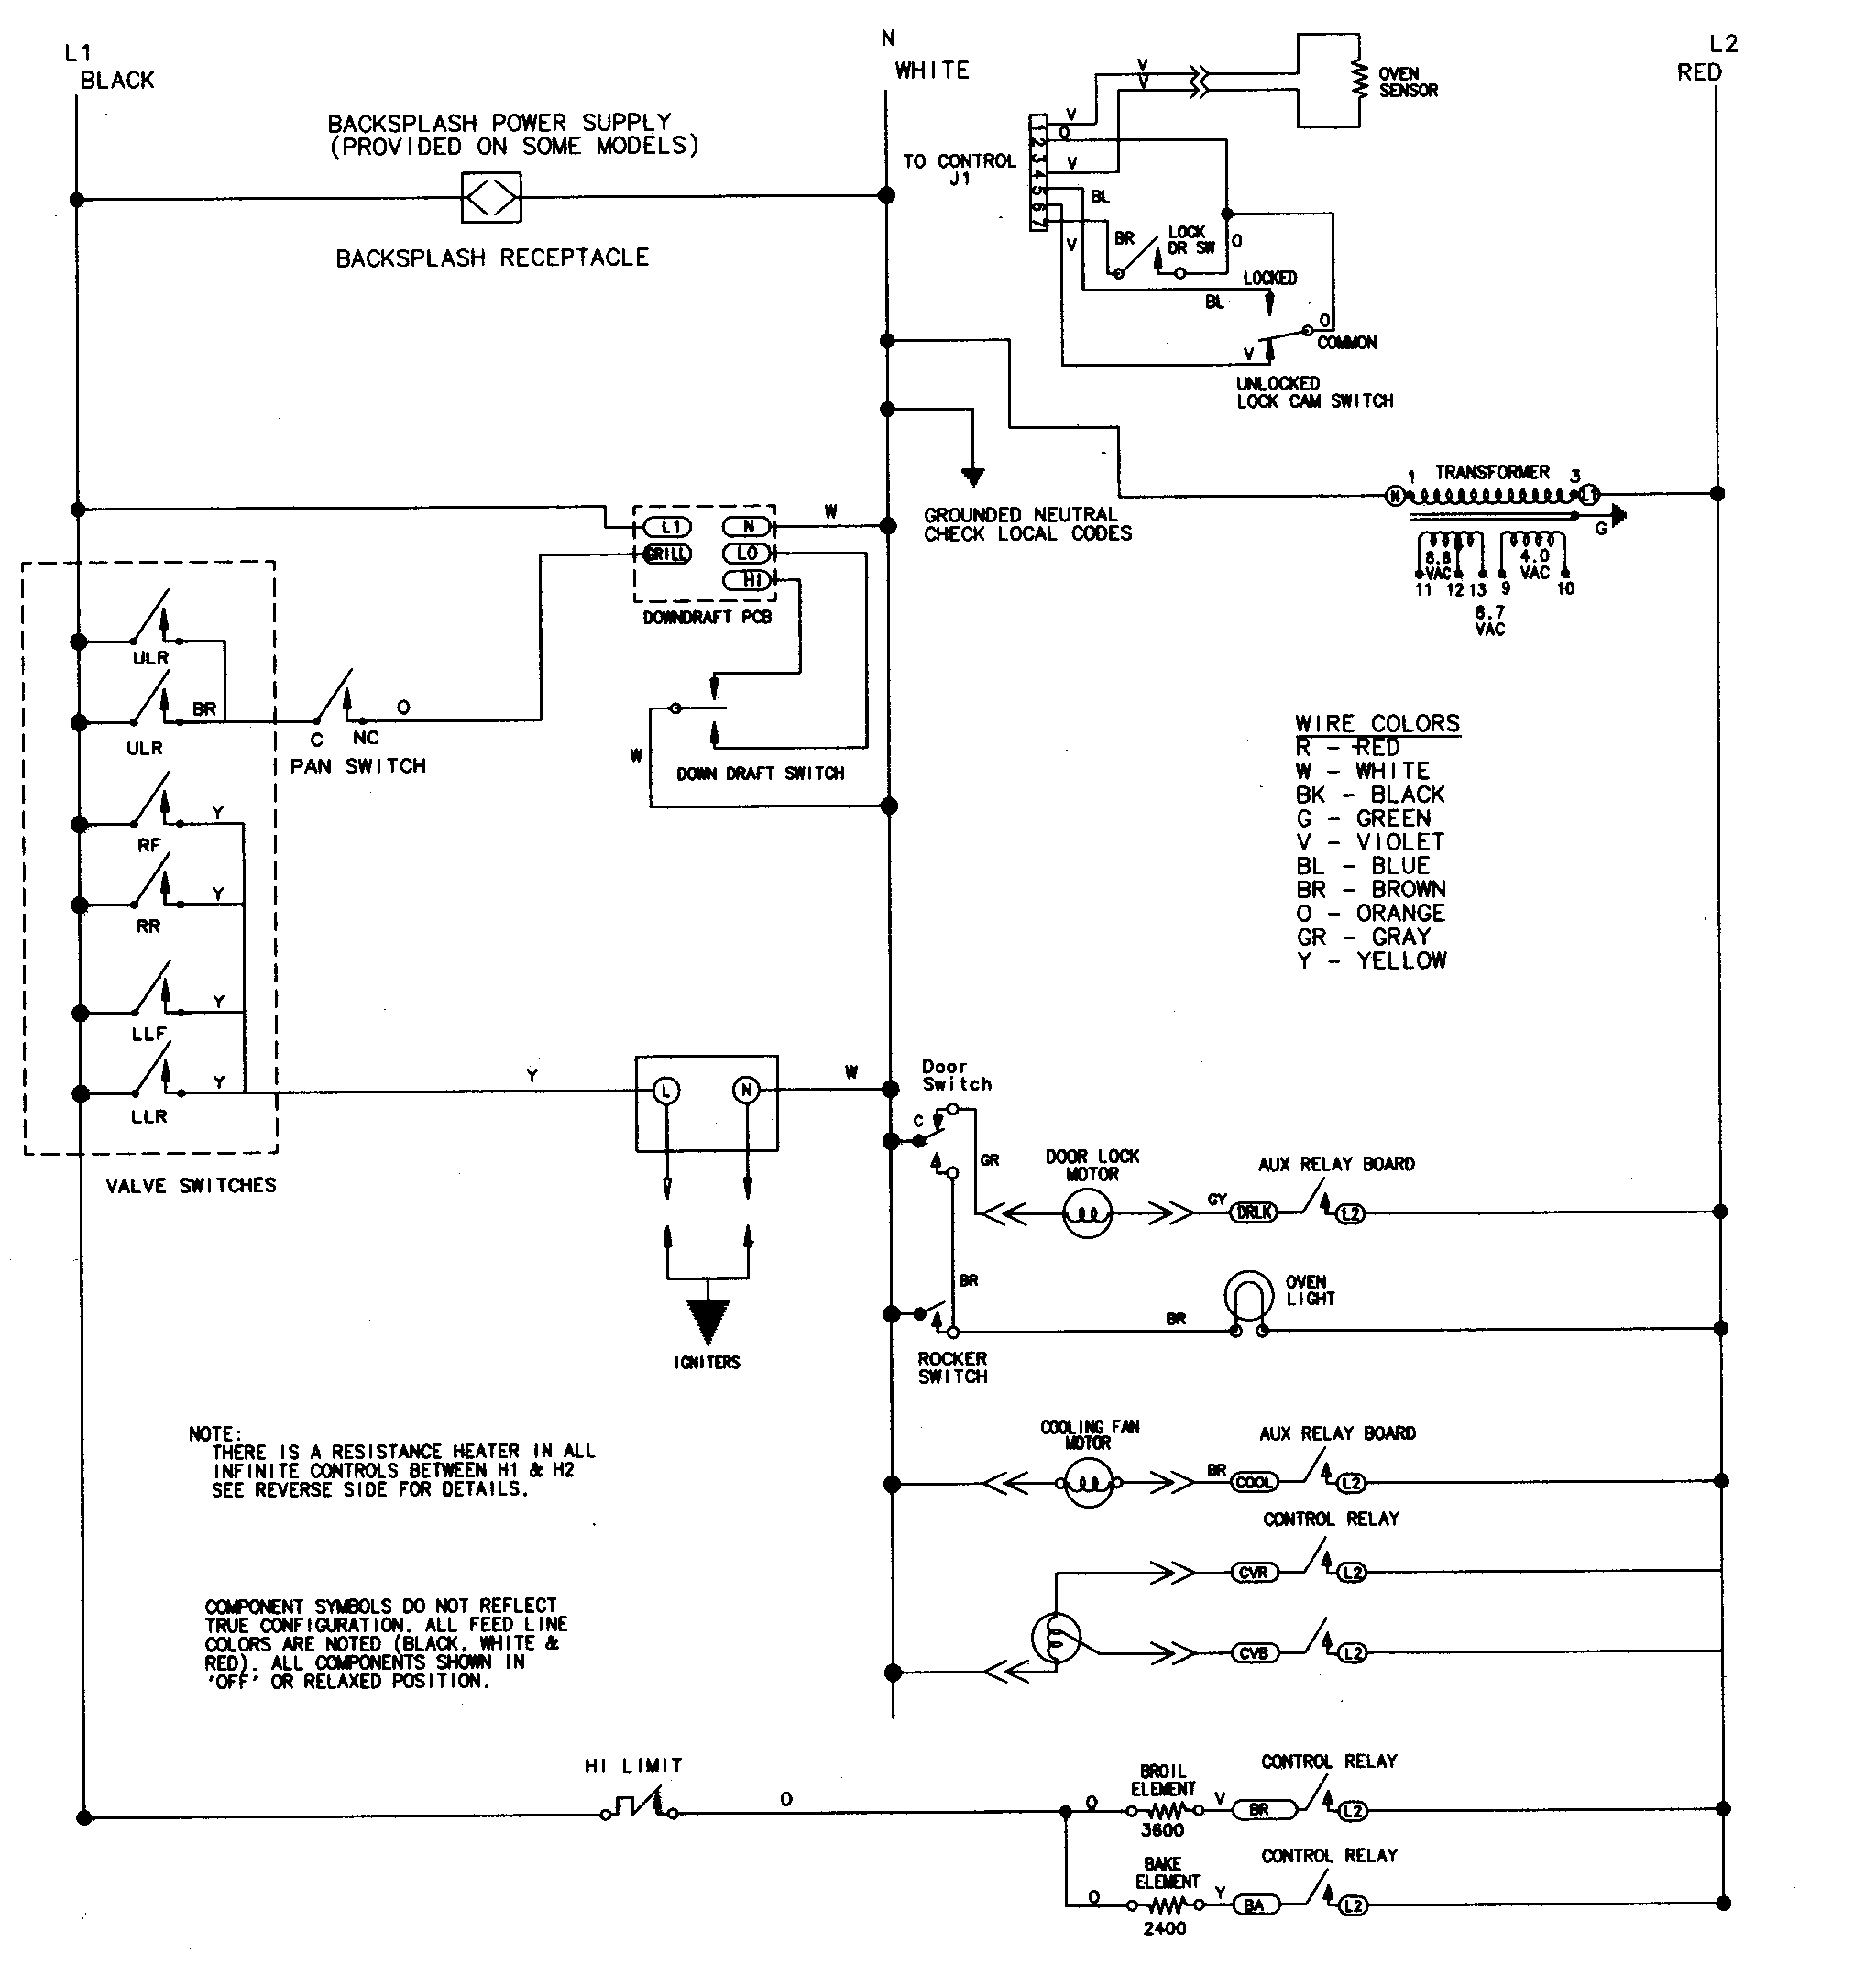 Blower Wiring Diagramd For Gas Fireplaces  e2 80 93 on wood furnace blower replacement